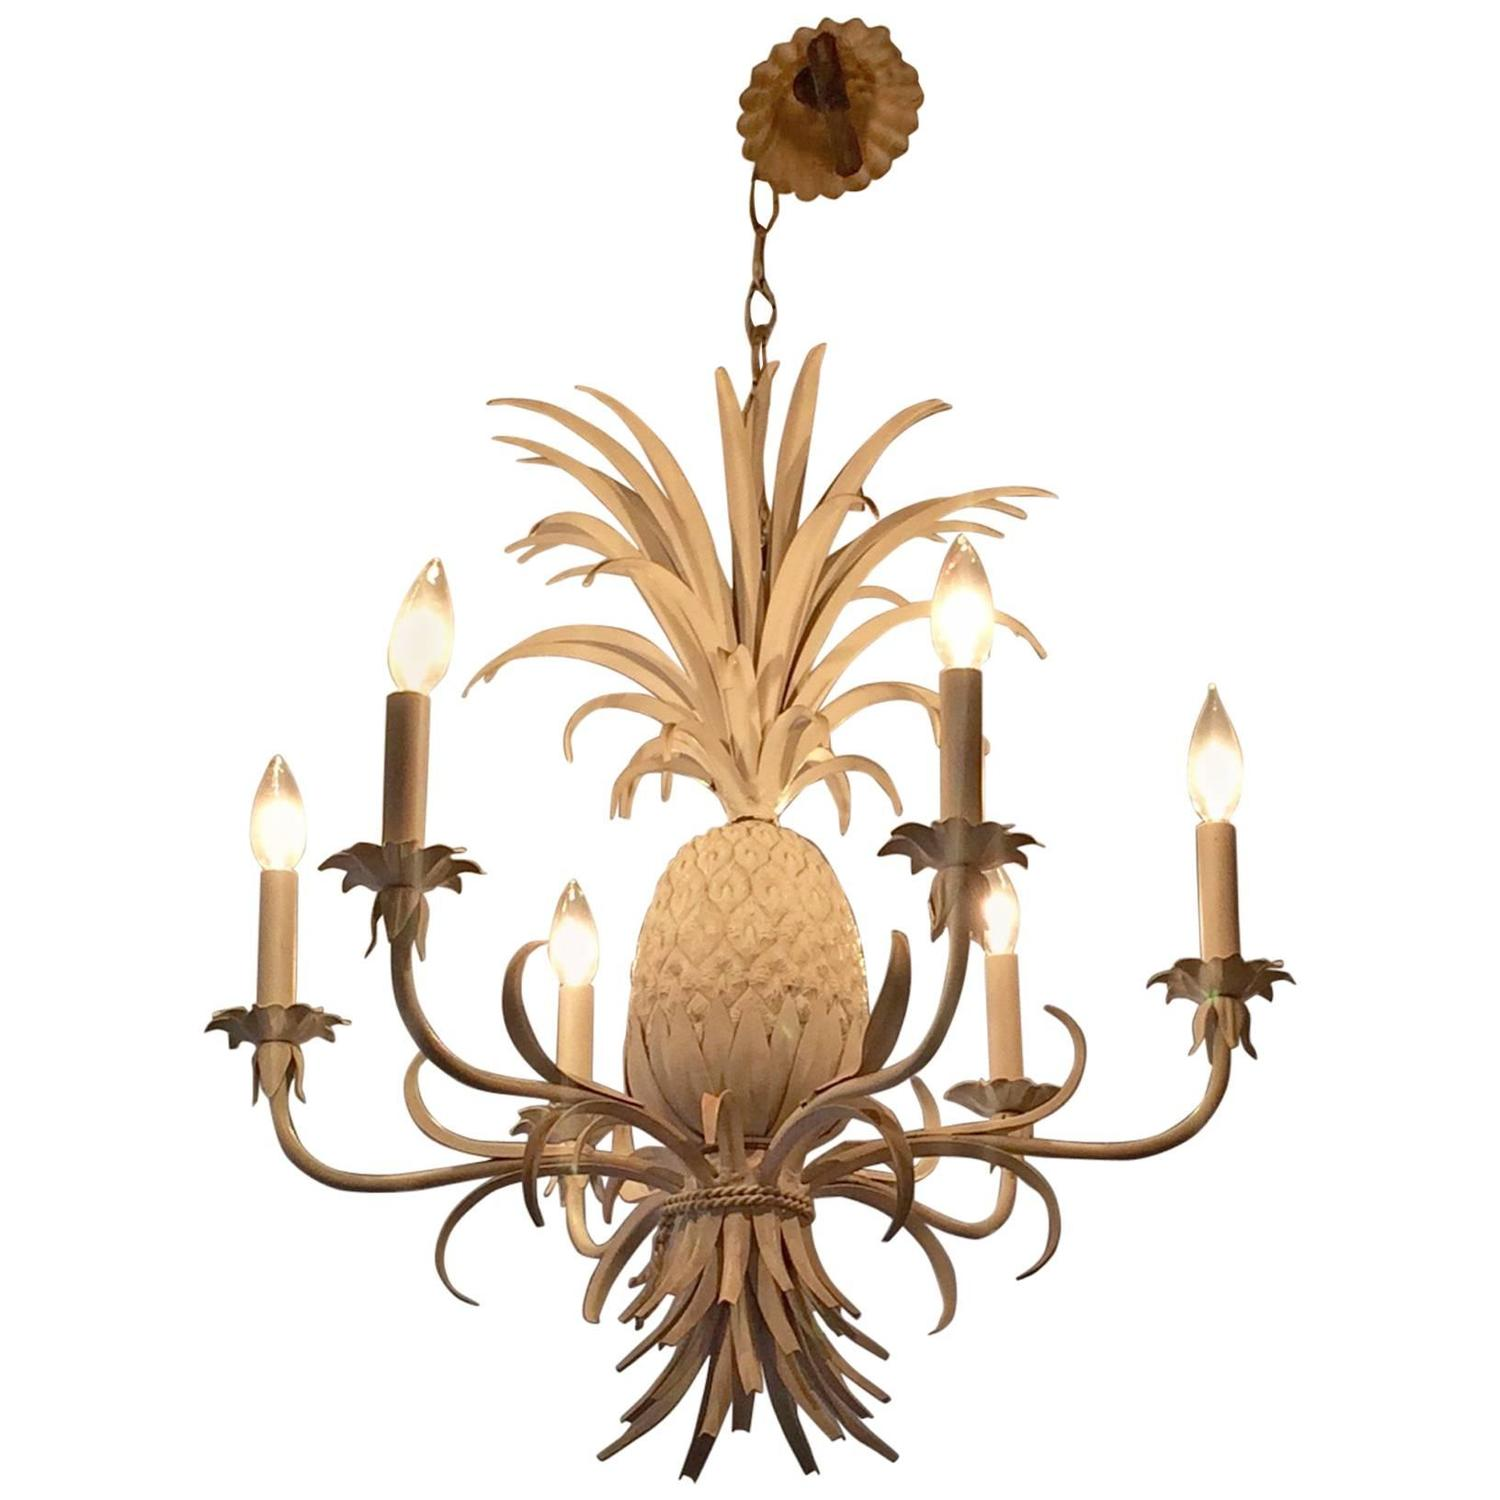 Glamorous White Painted Tole and Iron Pineapple Chandelier at 1stdibs